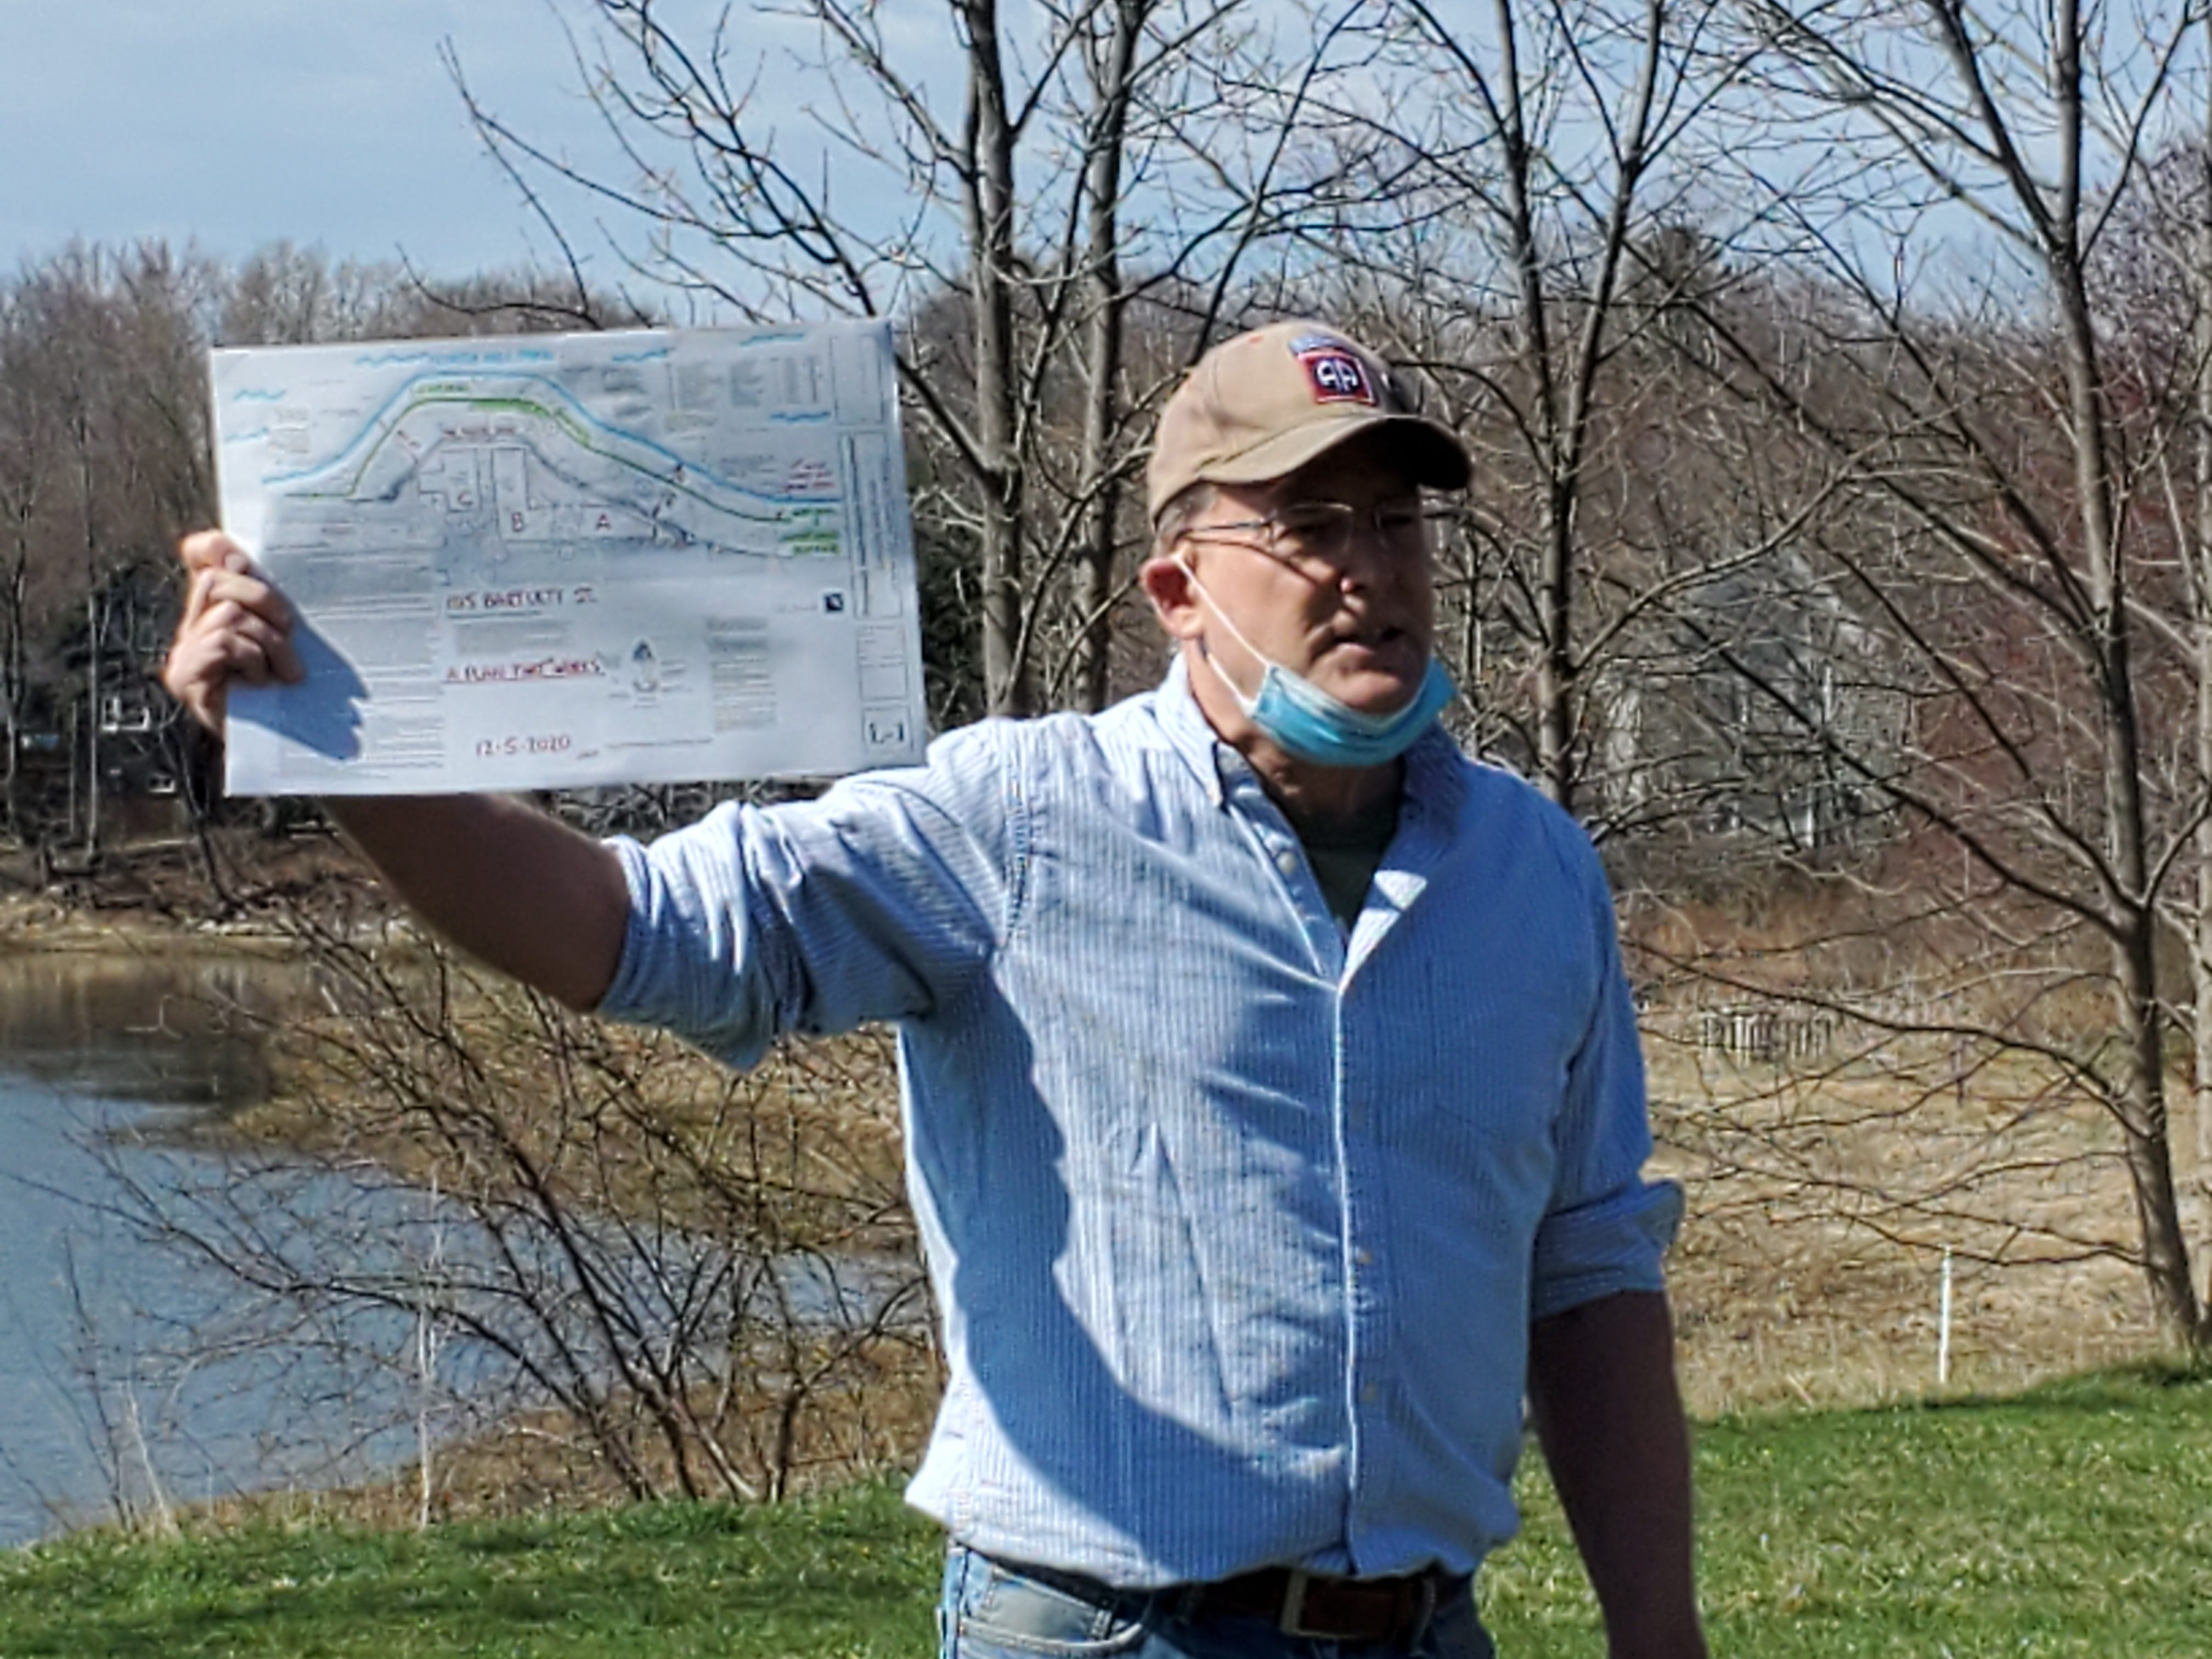 Jim Hewitt, Portsmouth resident and abutter to a project that would add 152 apartments to the shores of the North Mill Pond, called during an event Saturday, April 10, 2021, for the project to keep a 100-foot buffer from the pond.